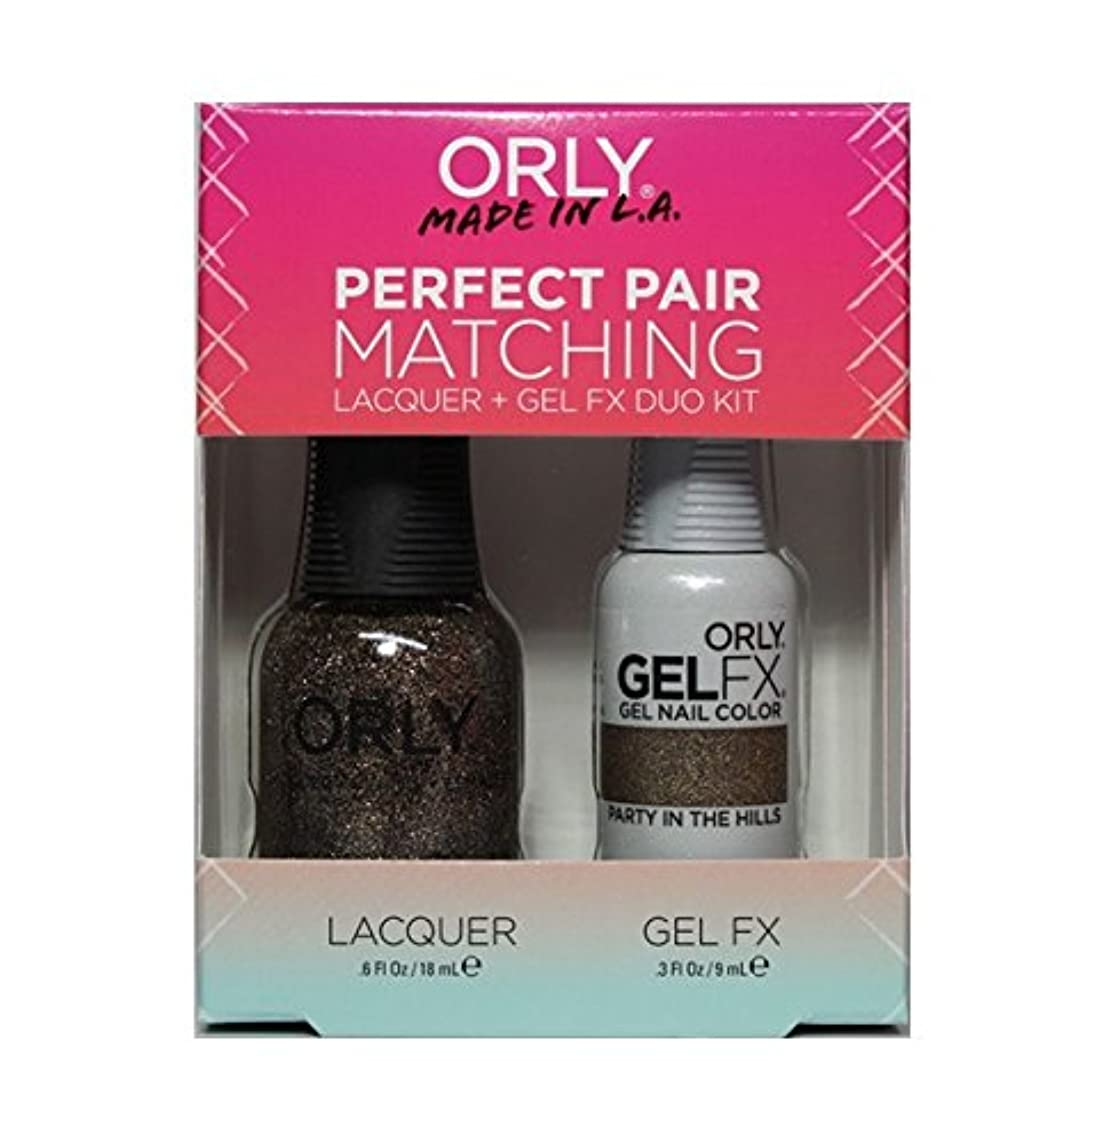 特権腫瘍信条Orly - Perfect Pair Matching Lacquer+Gel FX Kit - Party In The Hills - 0.6 oz / 0.3 oz